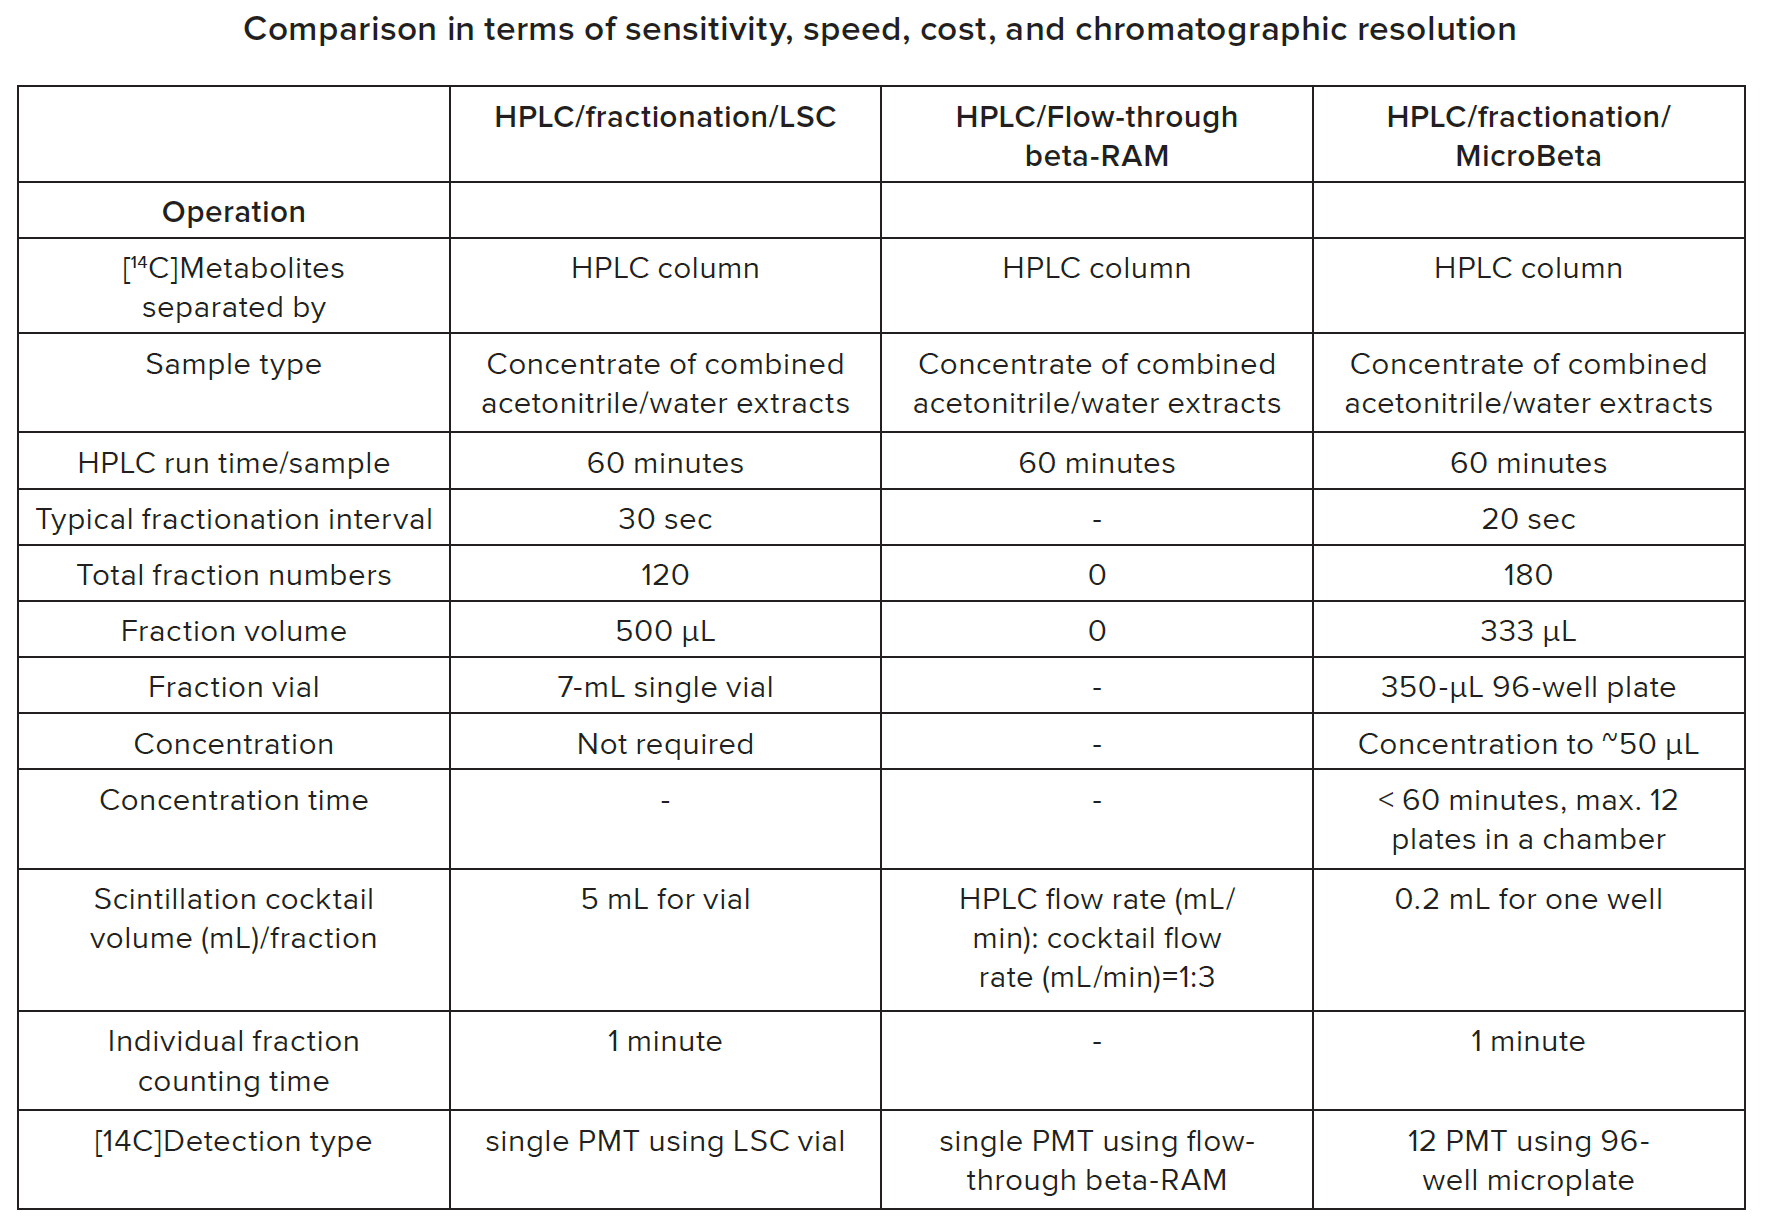 Comparison in terms of sensitivity, speed, cost, and chromatographic resolution pt.1